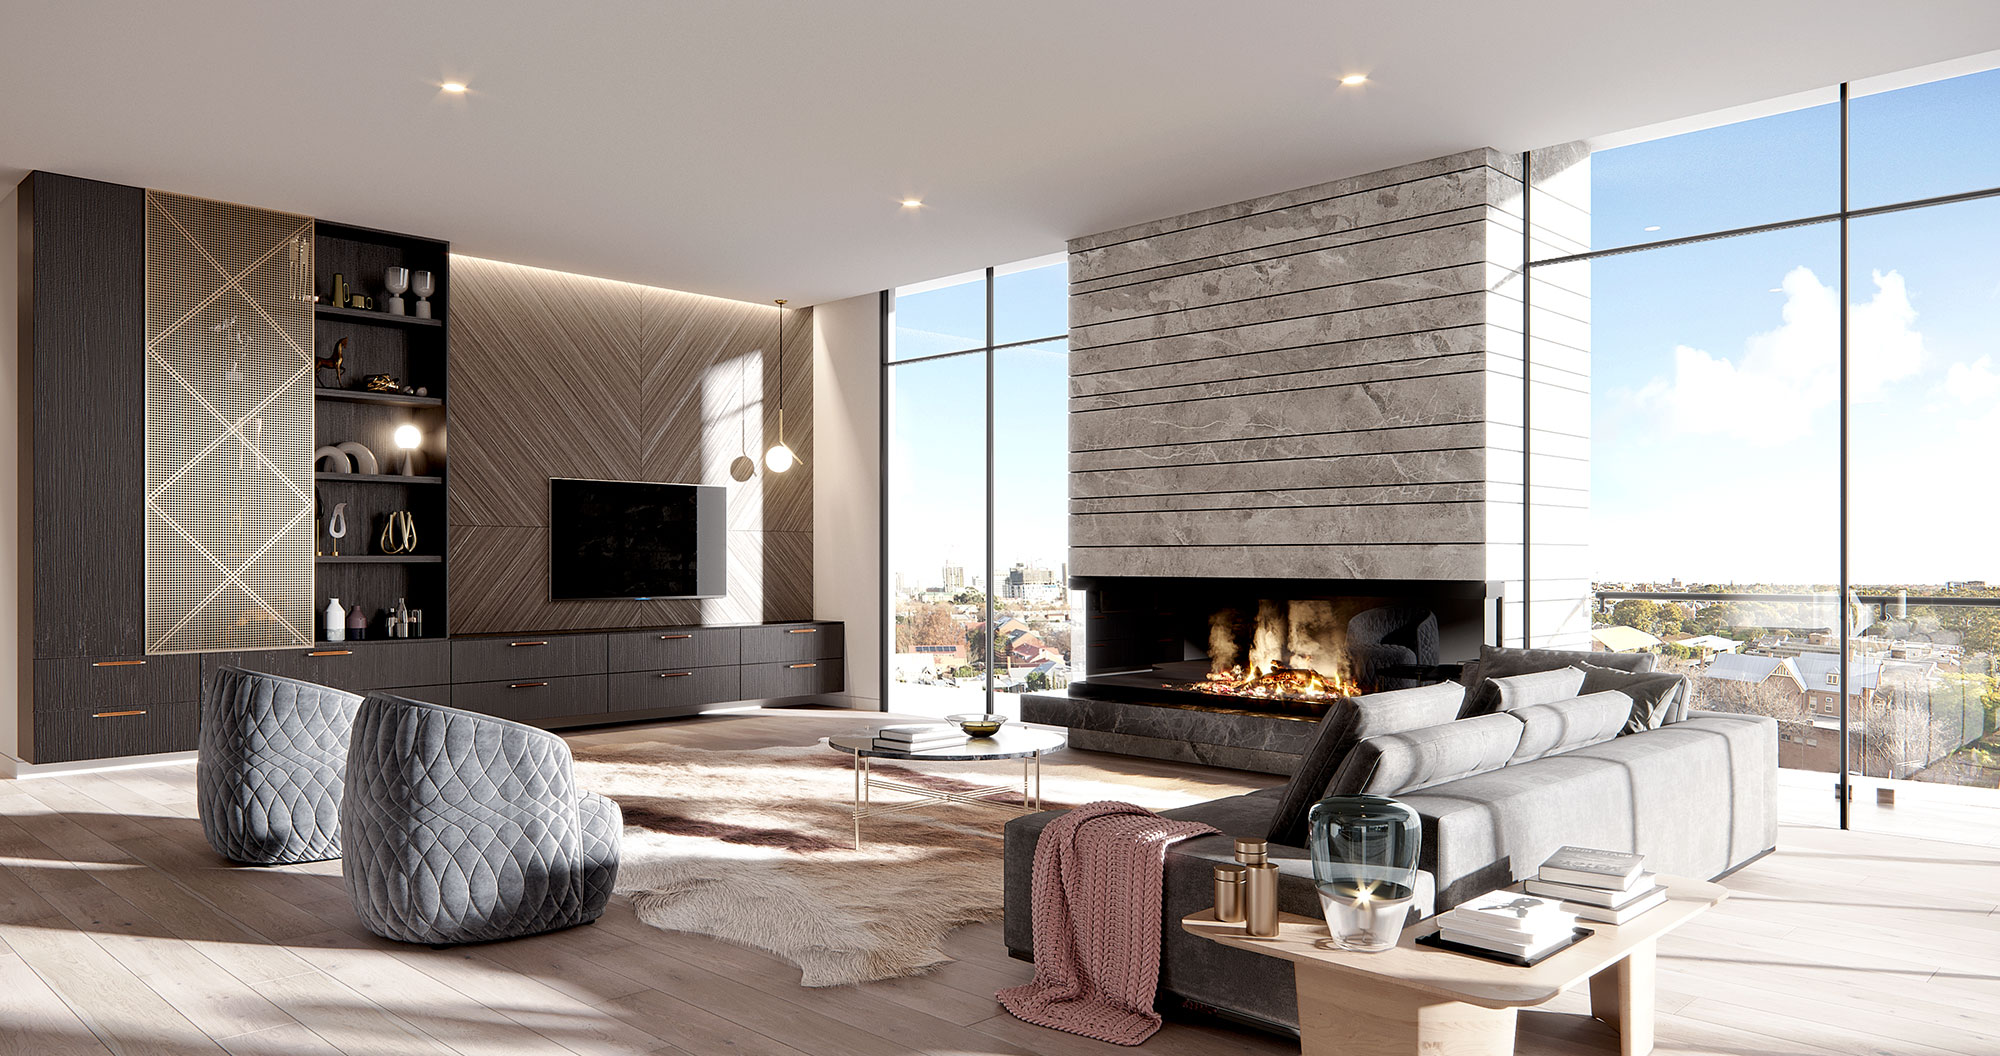 ETCE_Residences2A